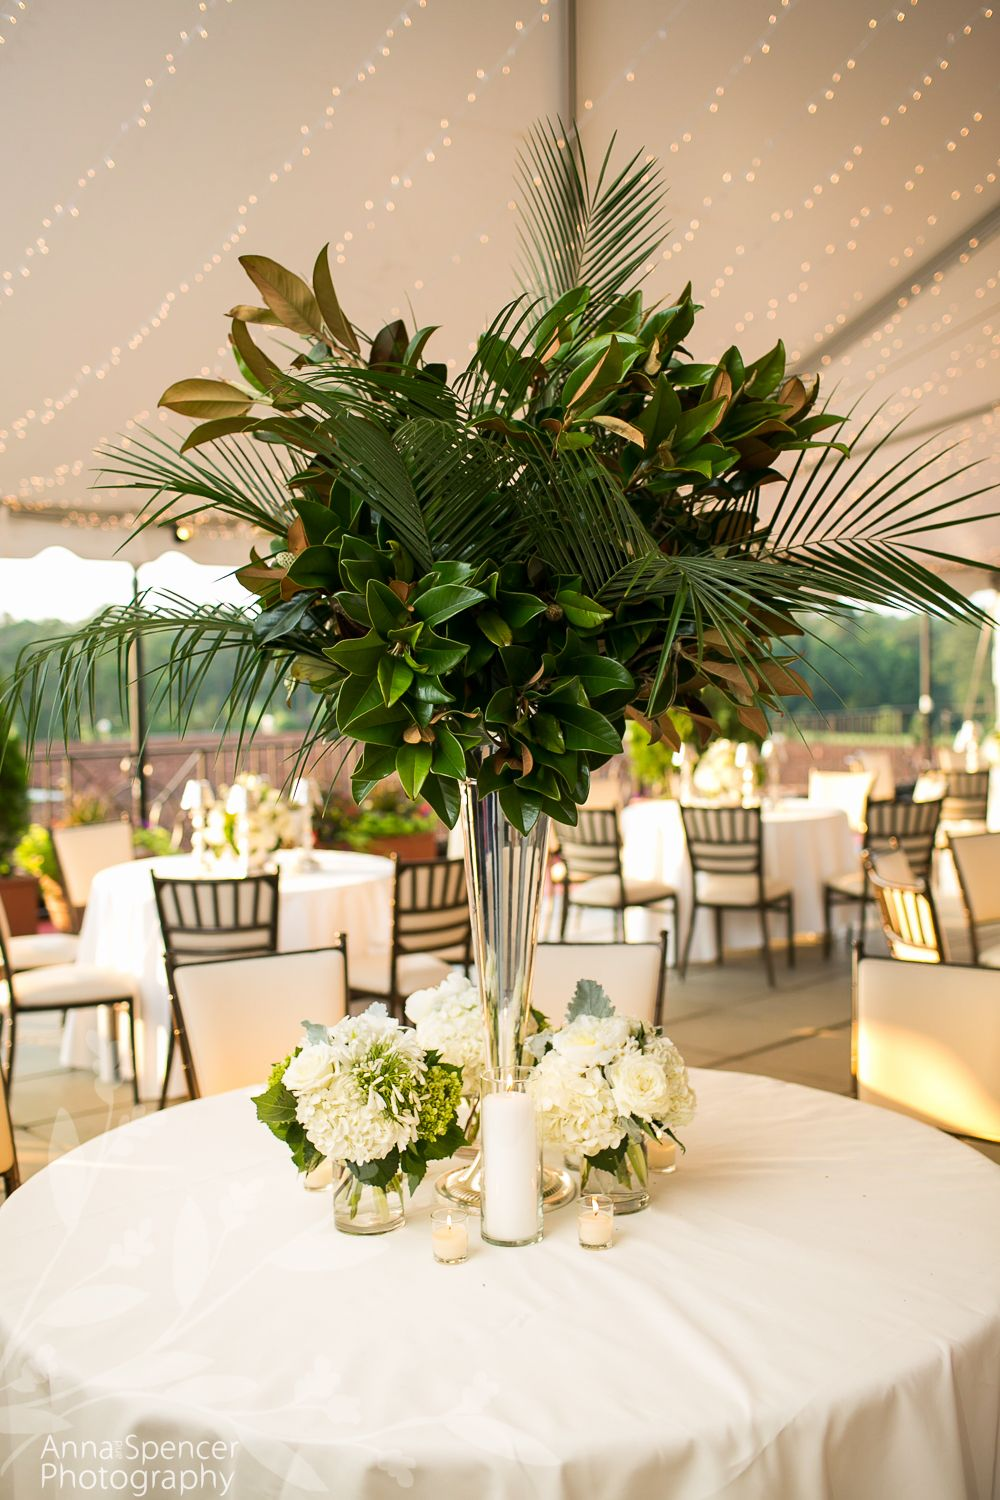 Tall Greenery Based Centerpiece With Magnolia Leaves And Low White Floral Arrangem Greenery Wedding Centerpieces White Floral Arrangements Wedding Arrangements